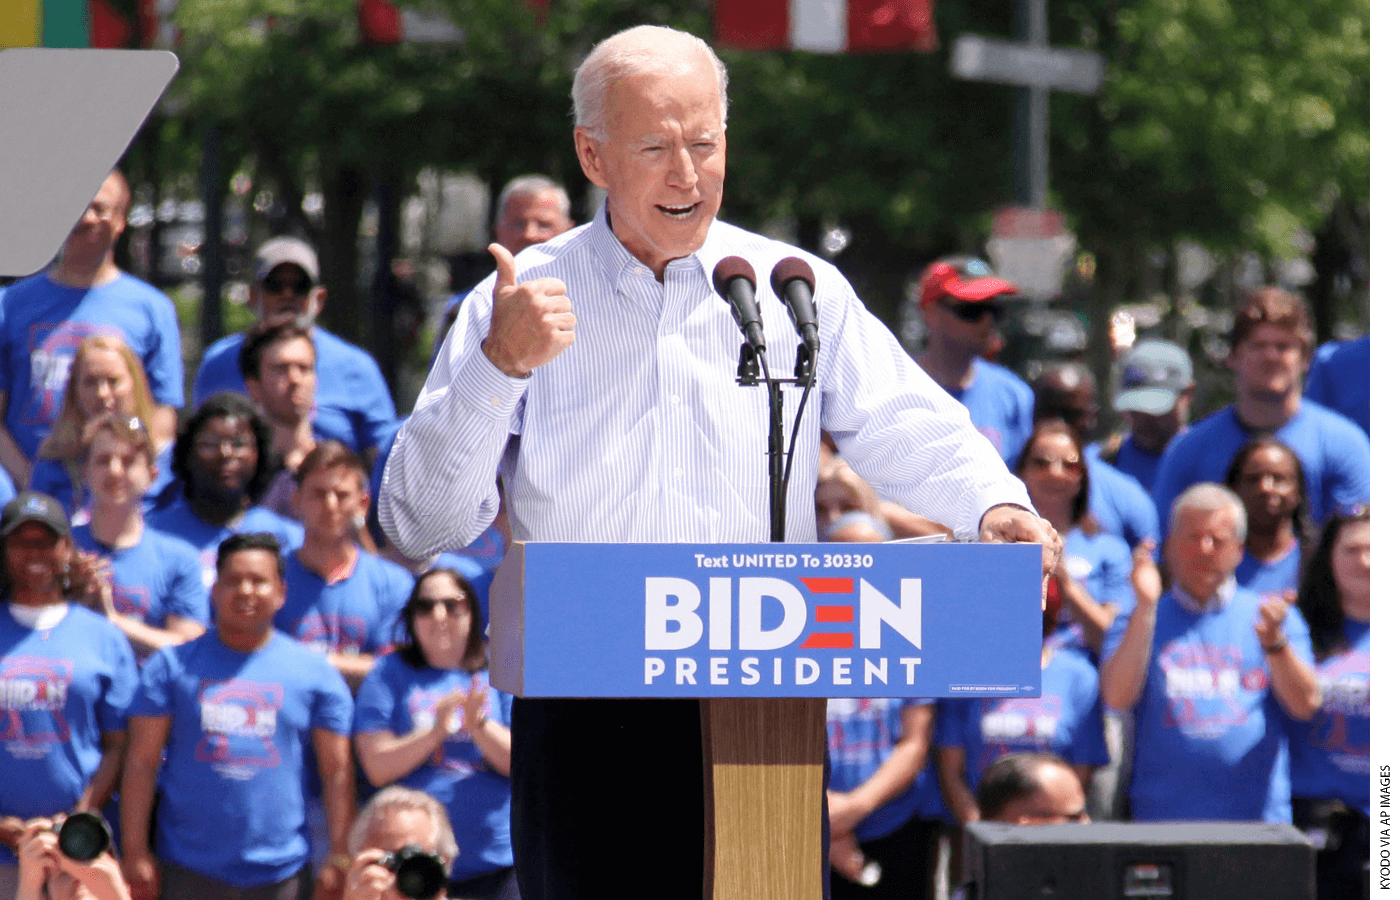 Joe Biden at a podium during a campaign rally.